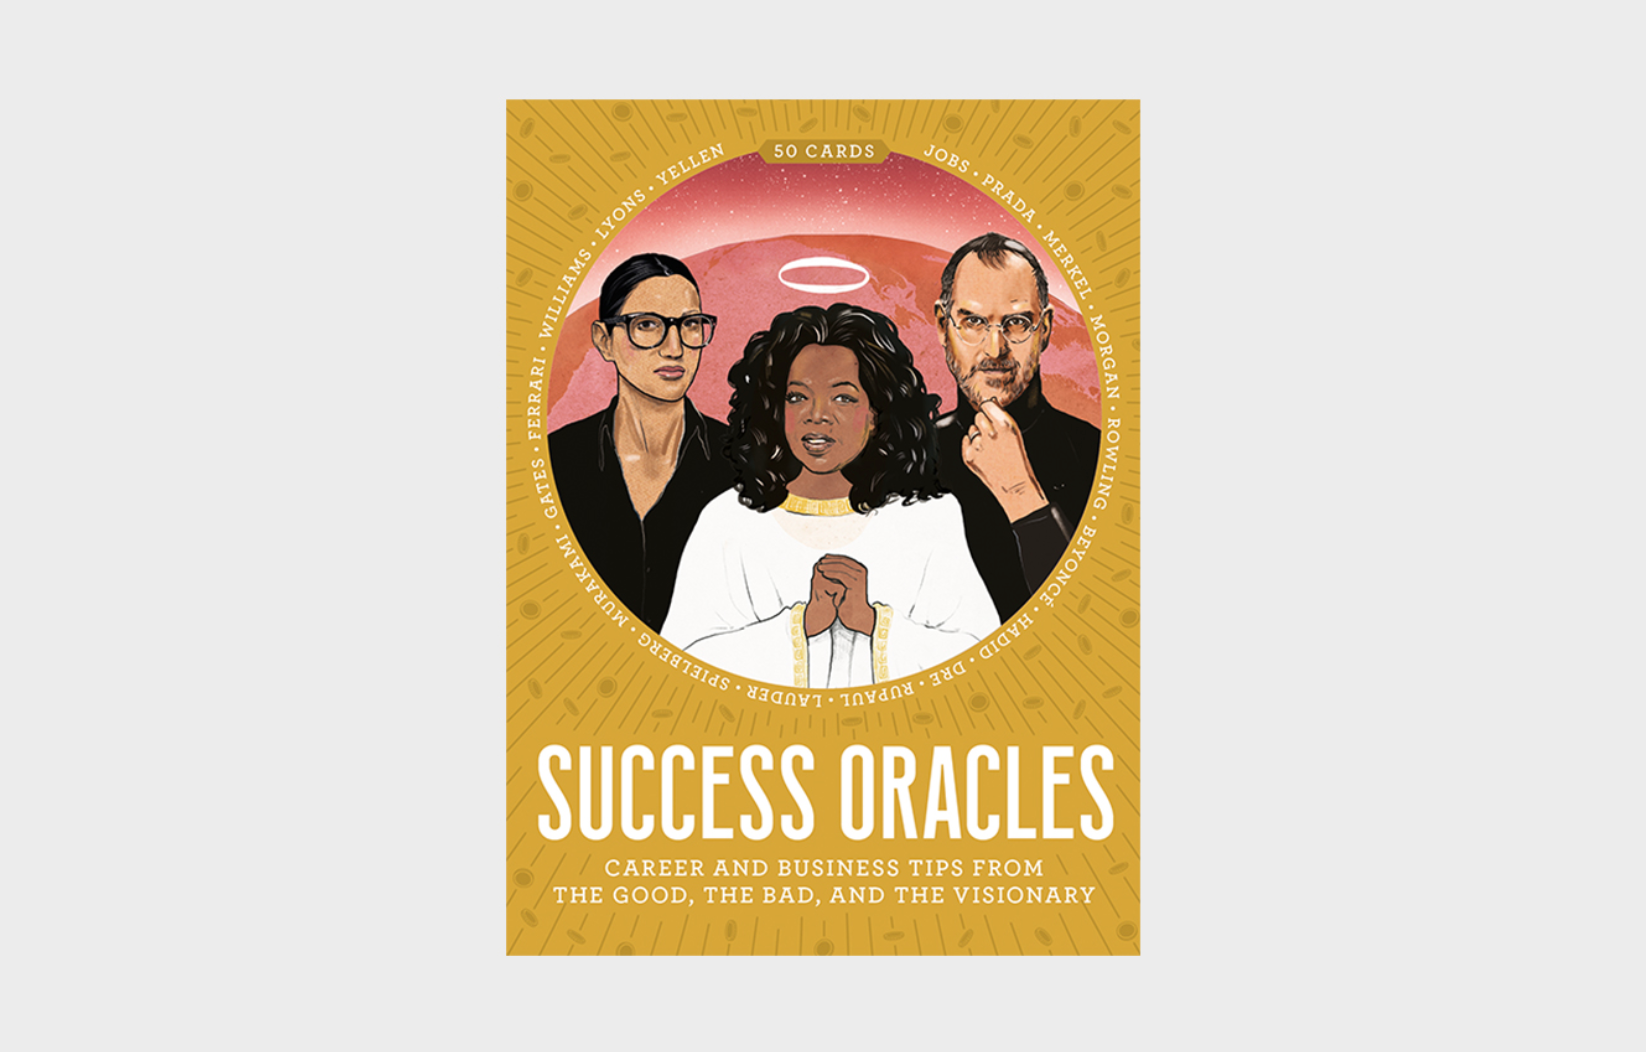 Success Oracles Career and Business Tips from the Good, the Bad, and the Visionary